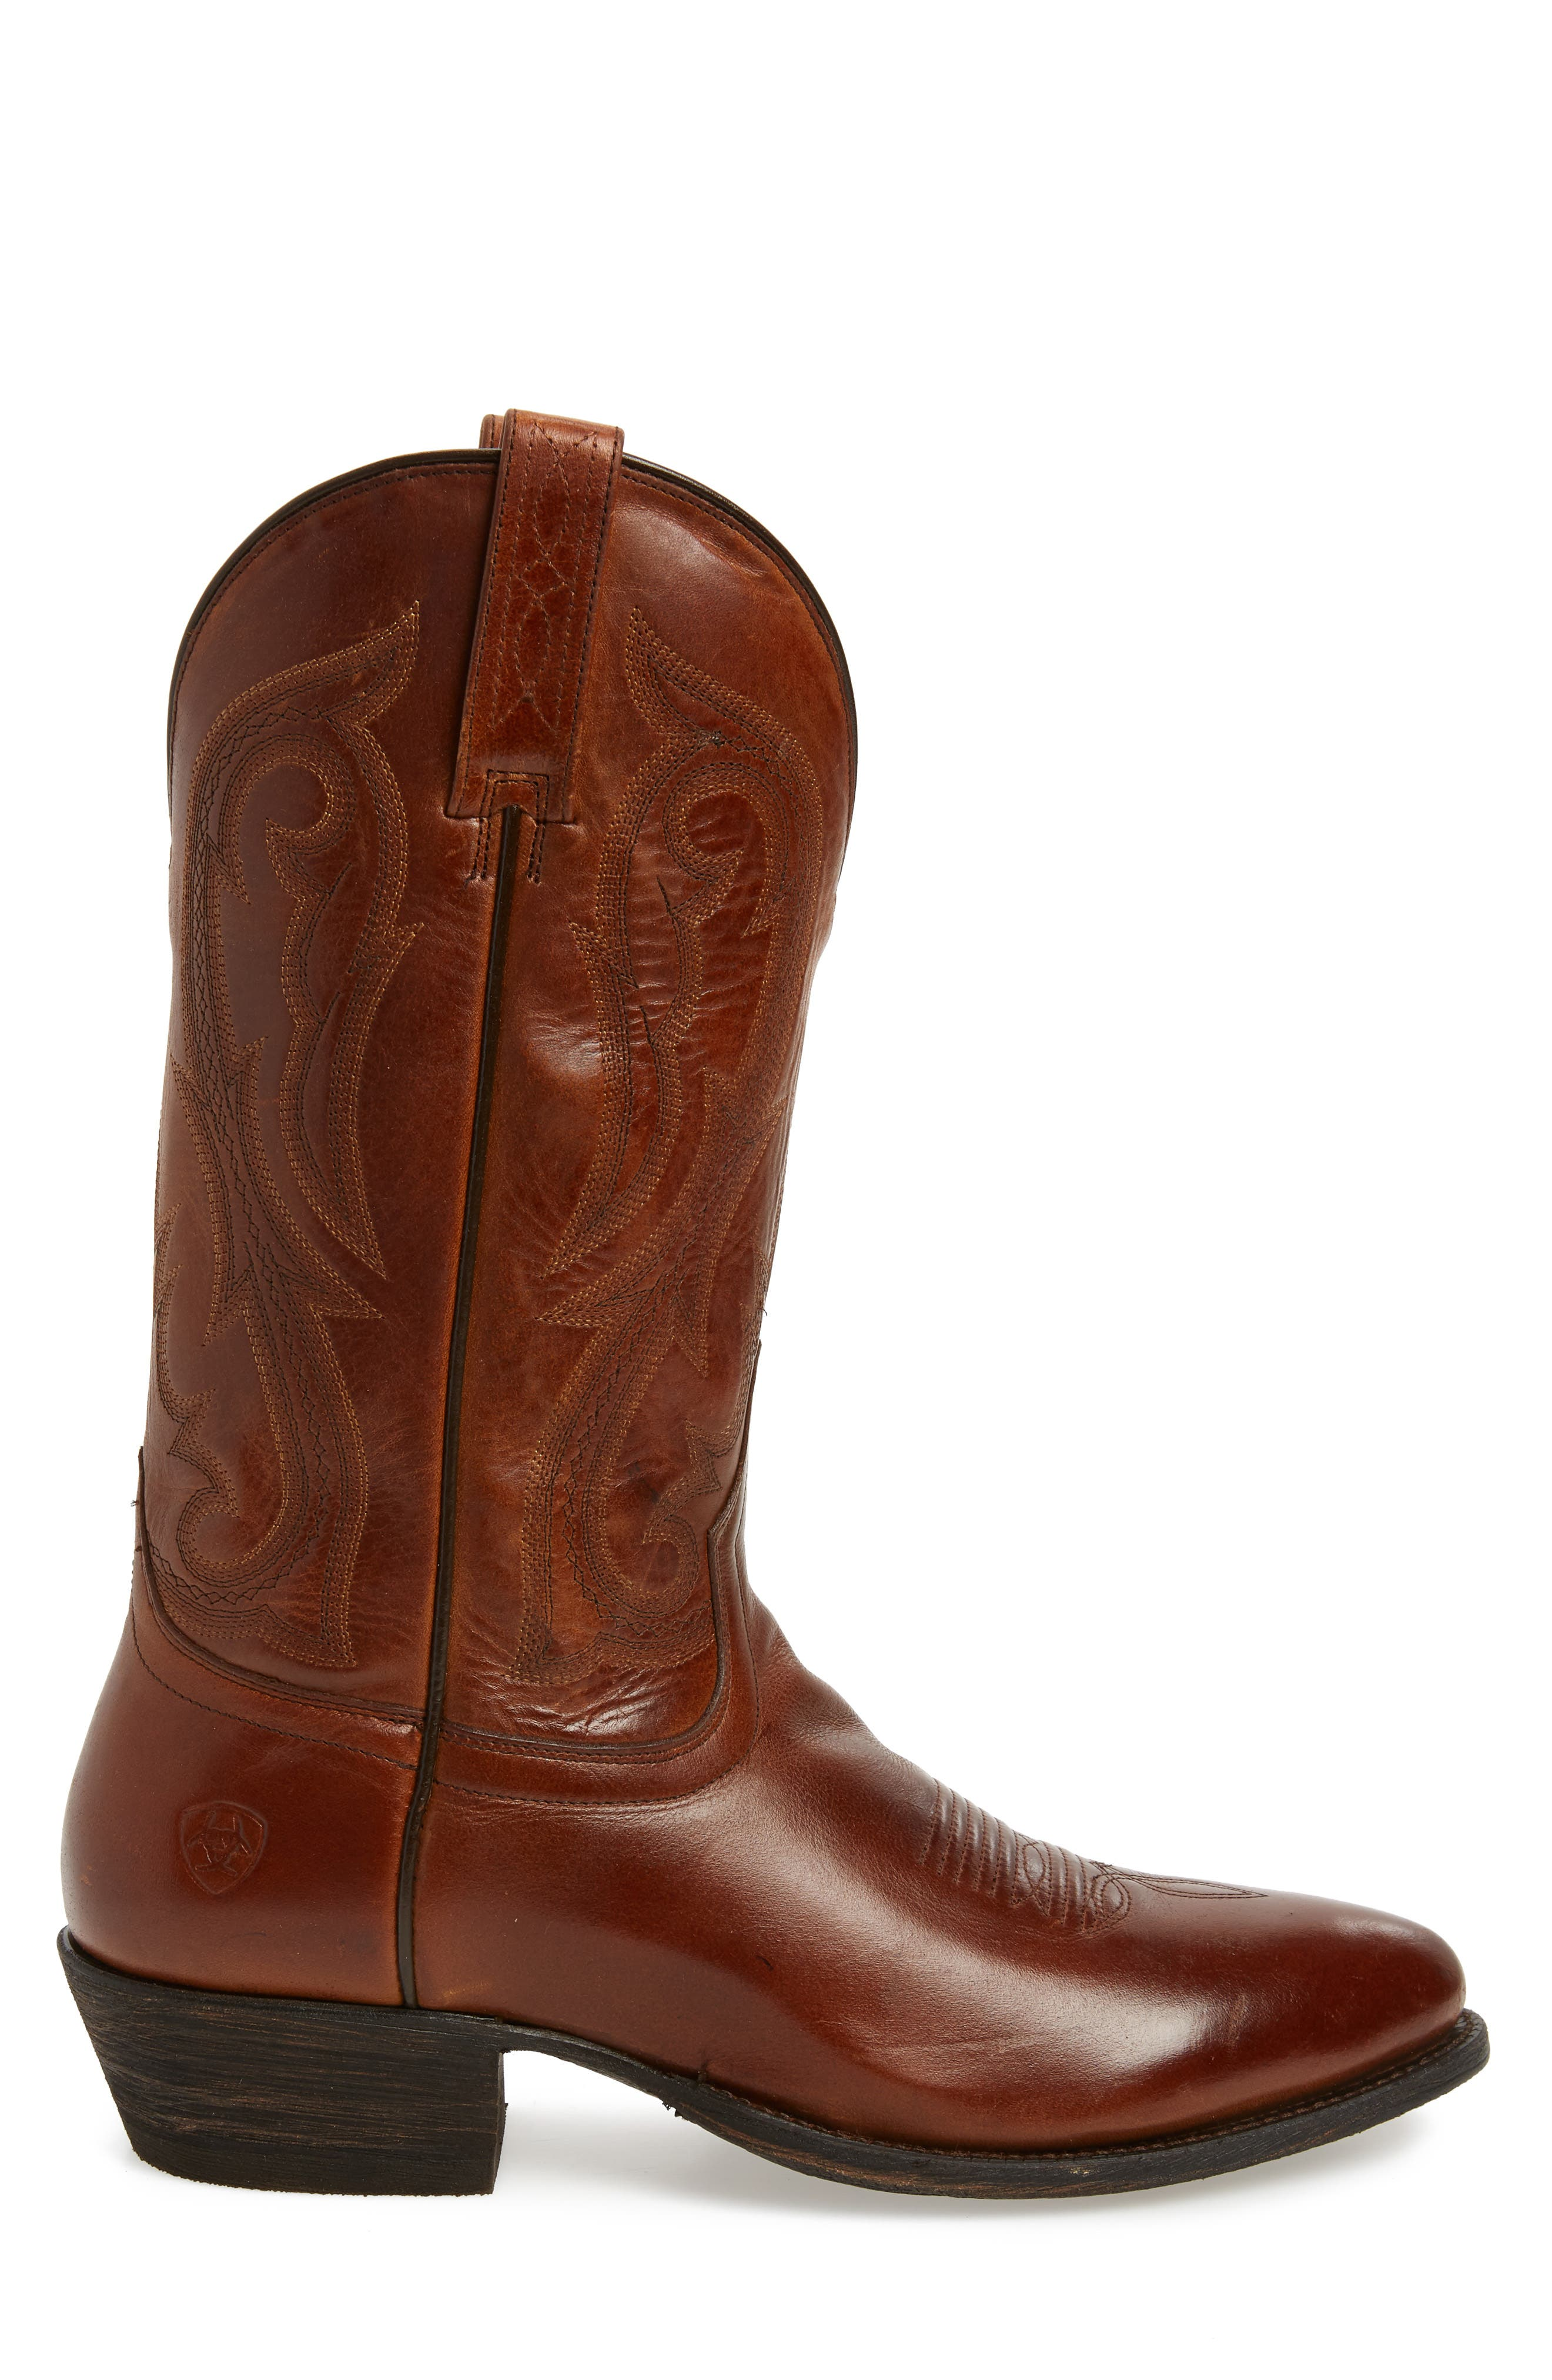 Circuit Tall Cowboy Boot,                             Alternate thumbnail 3, color,                             SPRUCED COGNAC LEATHER